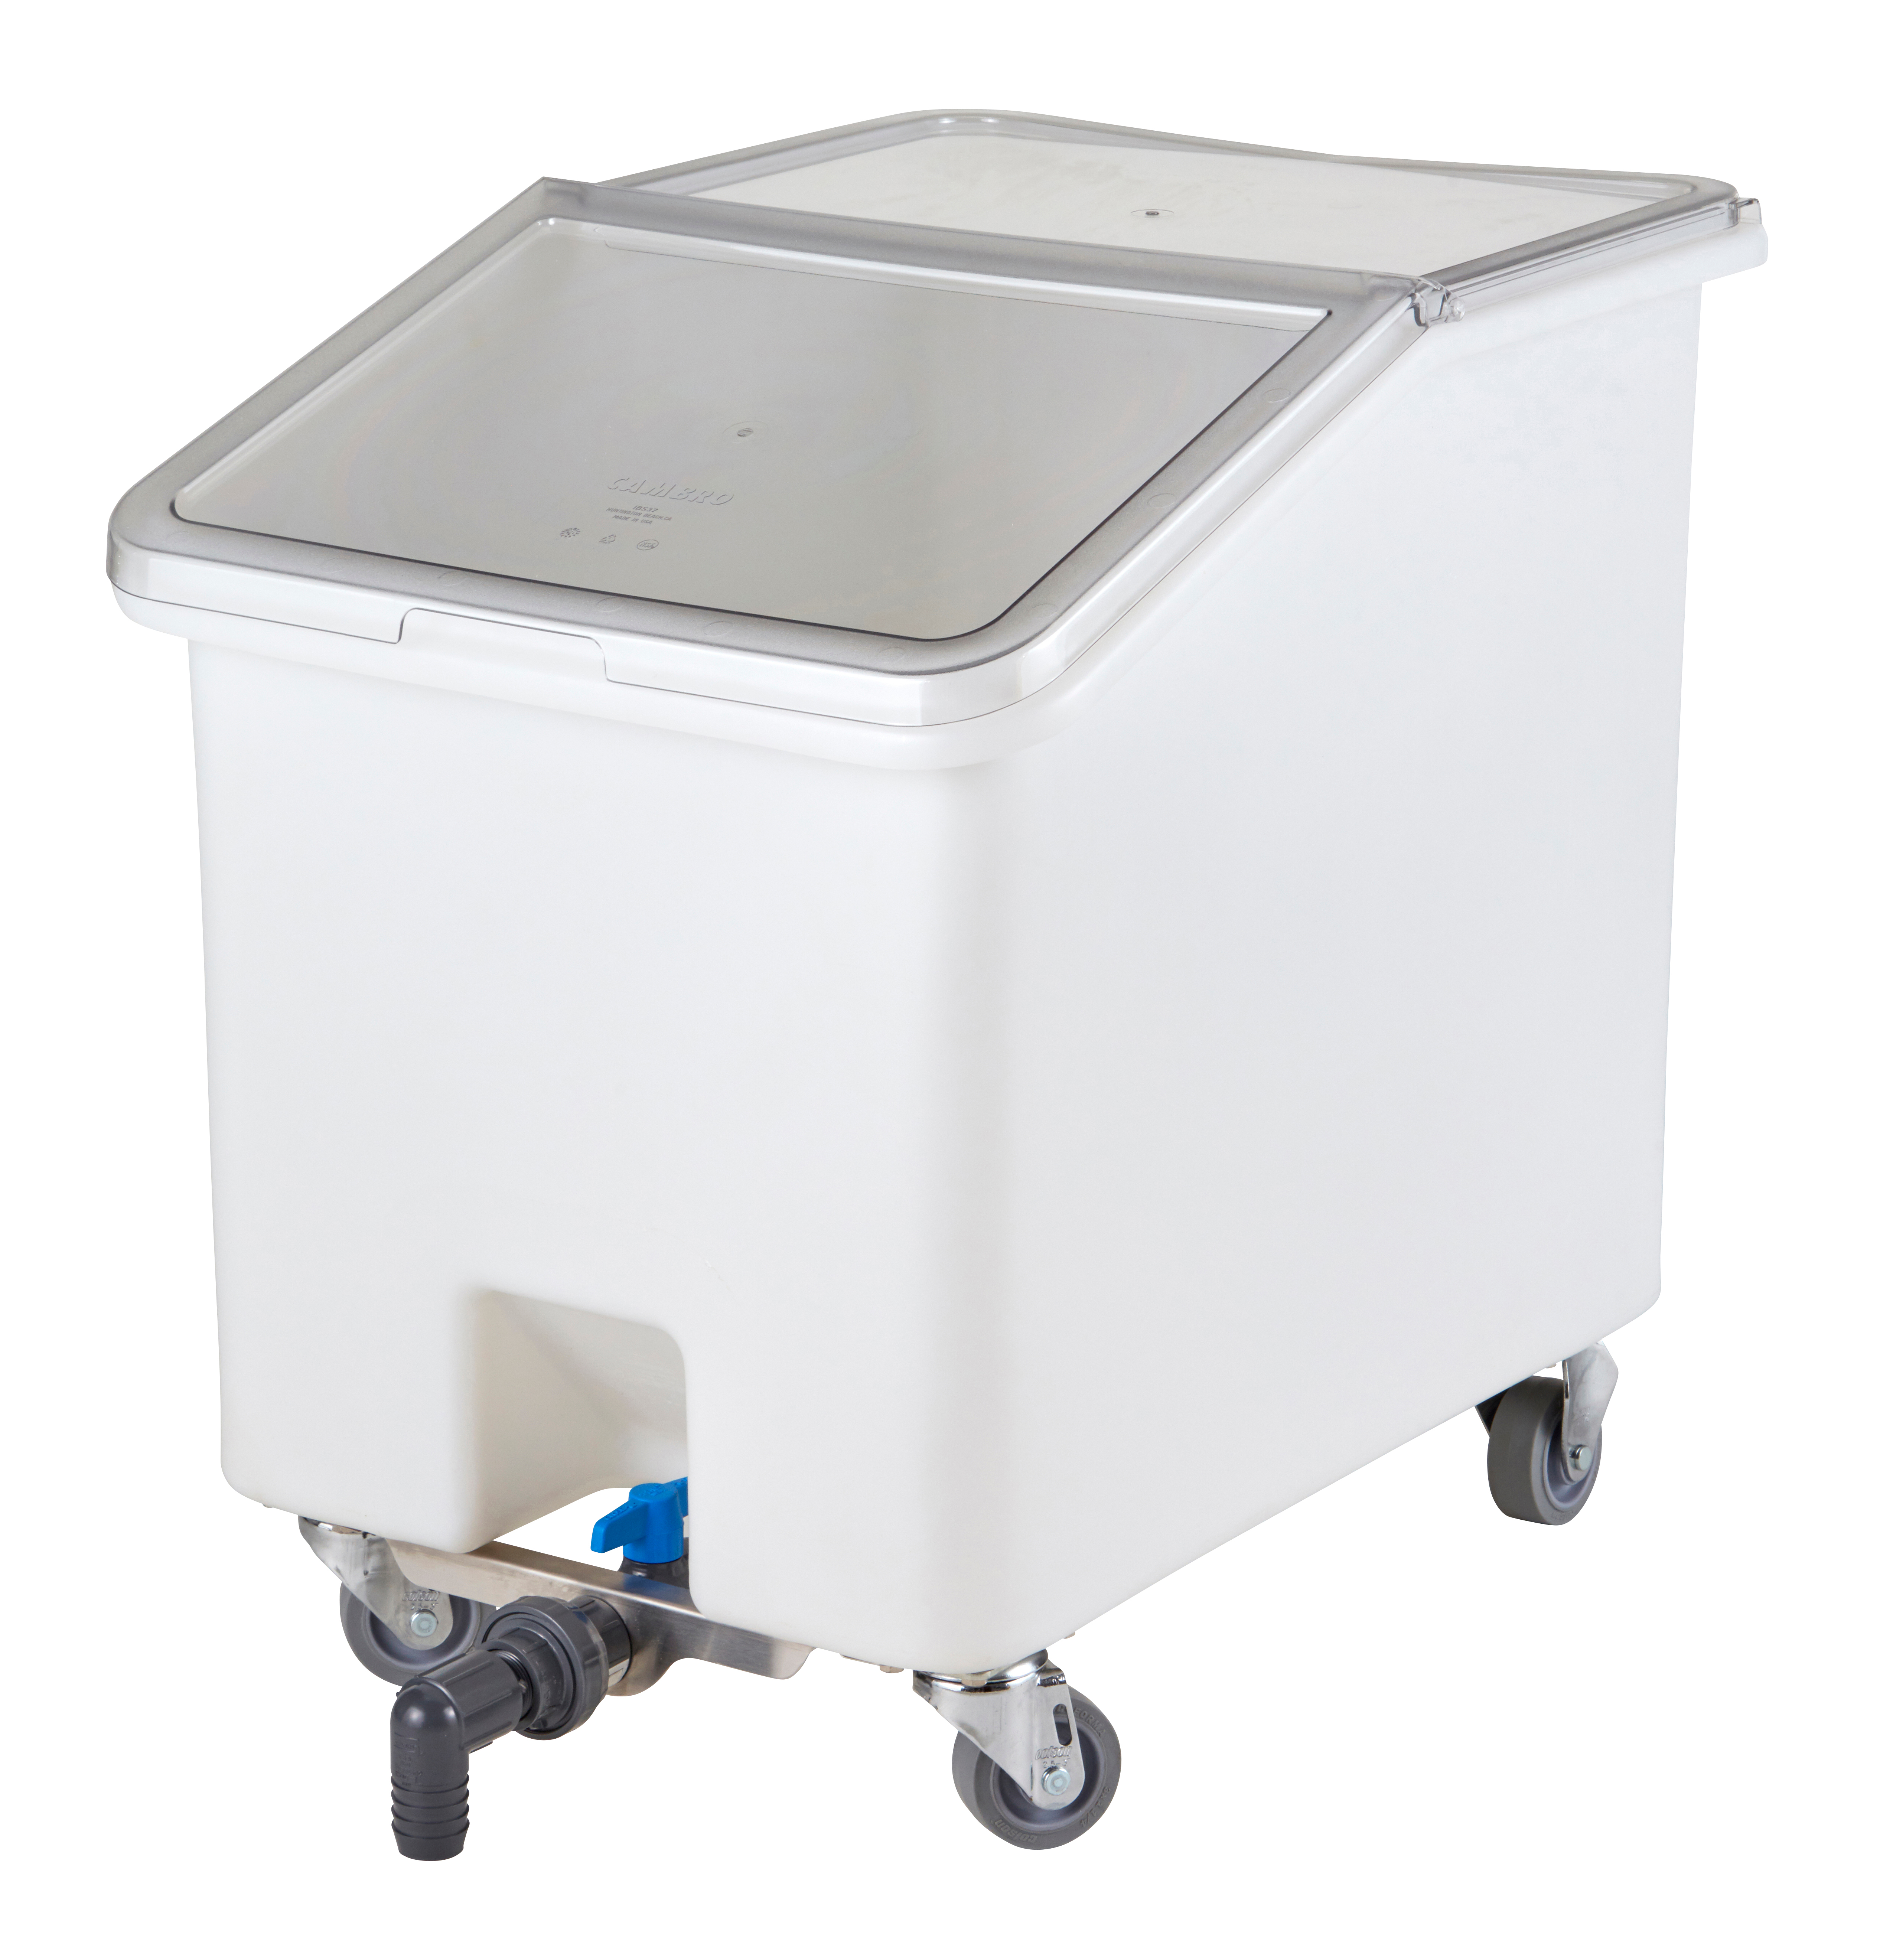 Cambro IBSD37148 food/beverage storage container